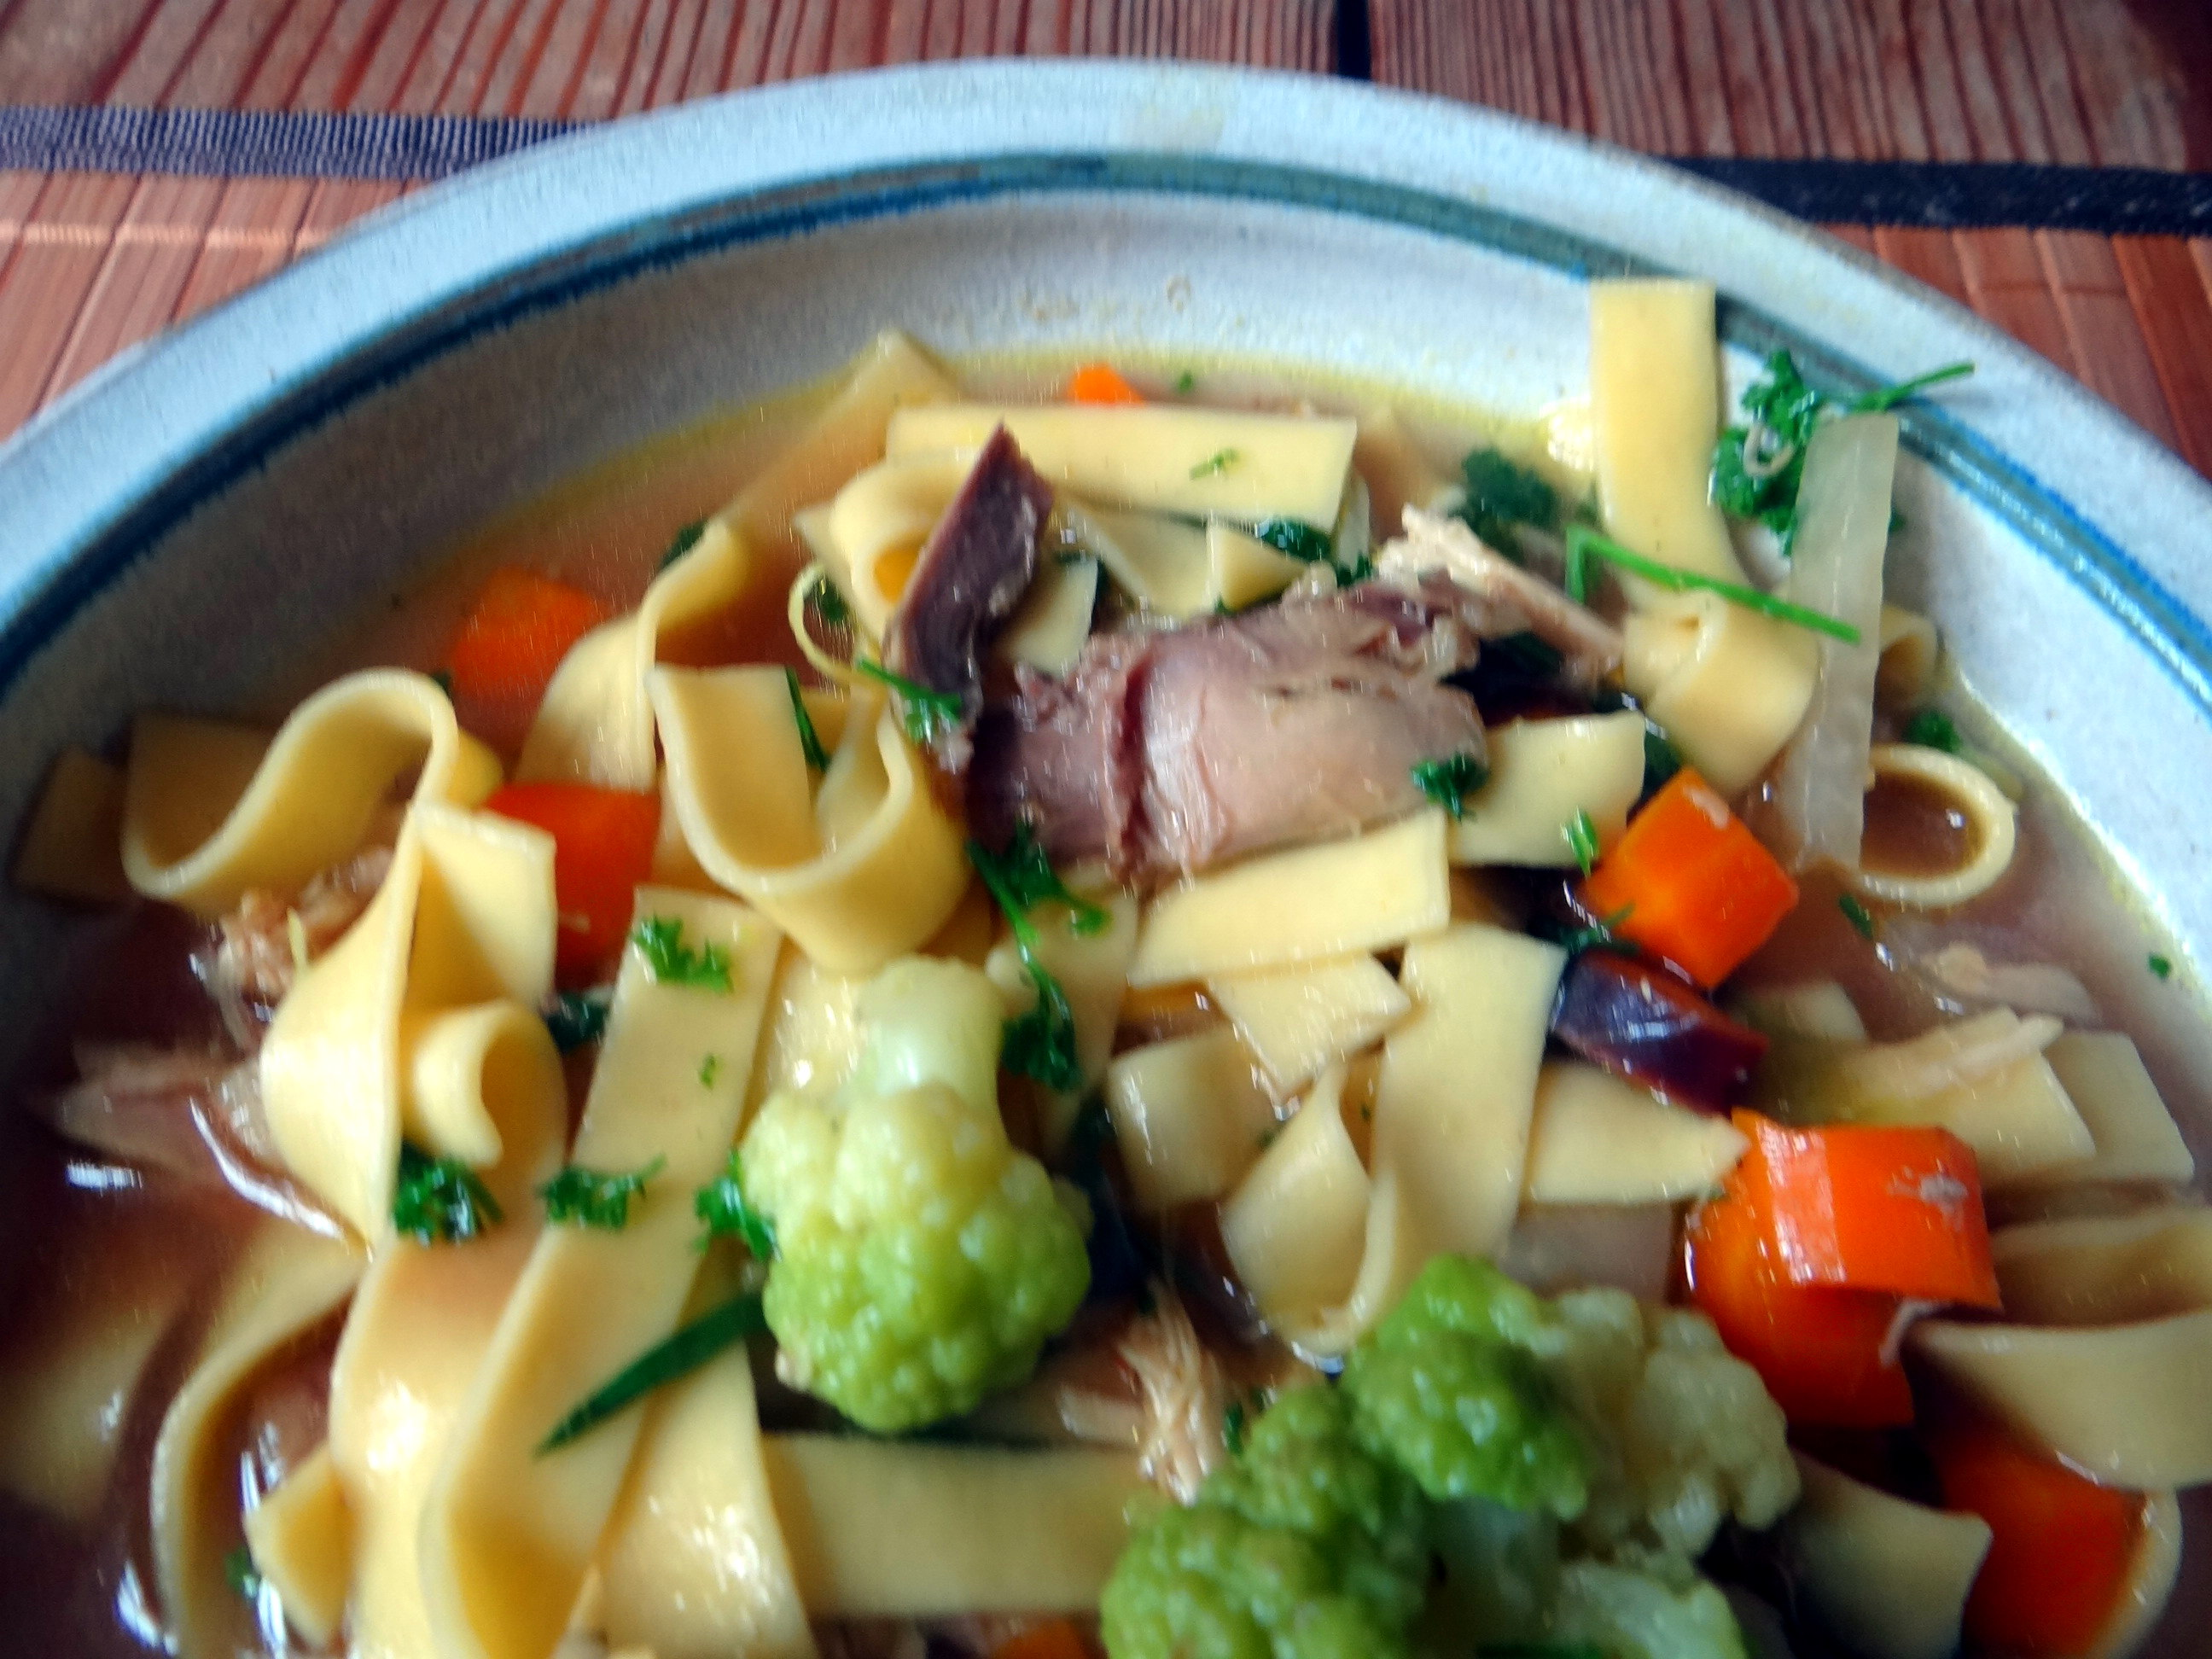 Nudelsuppe-4..7 (14)